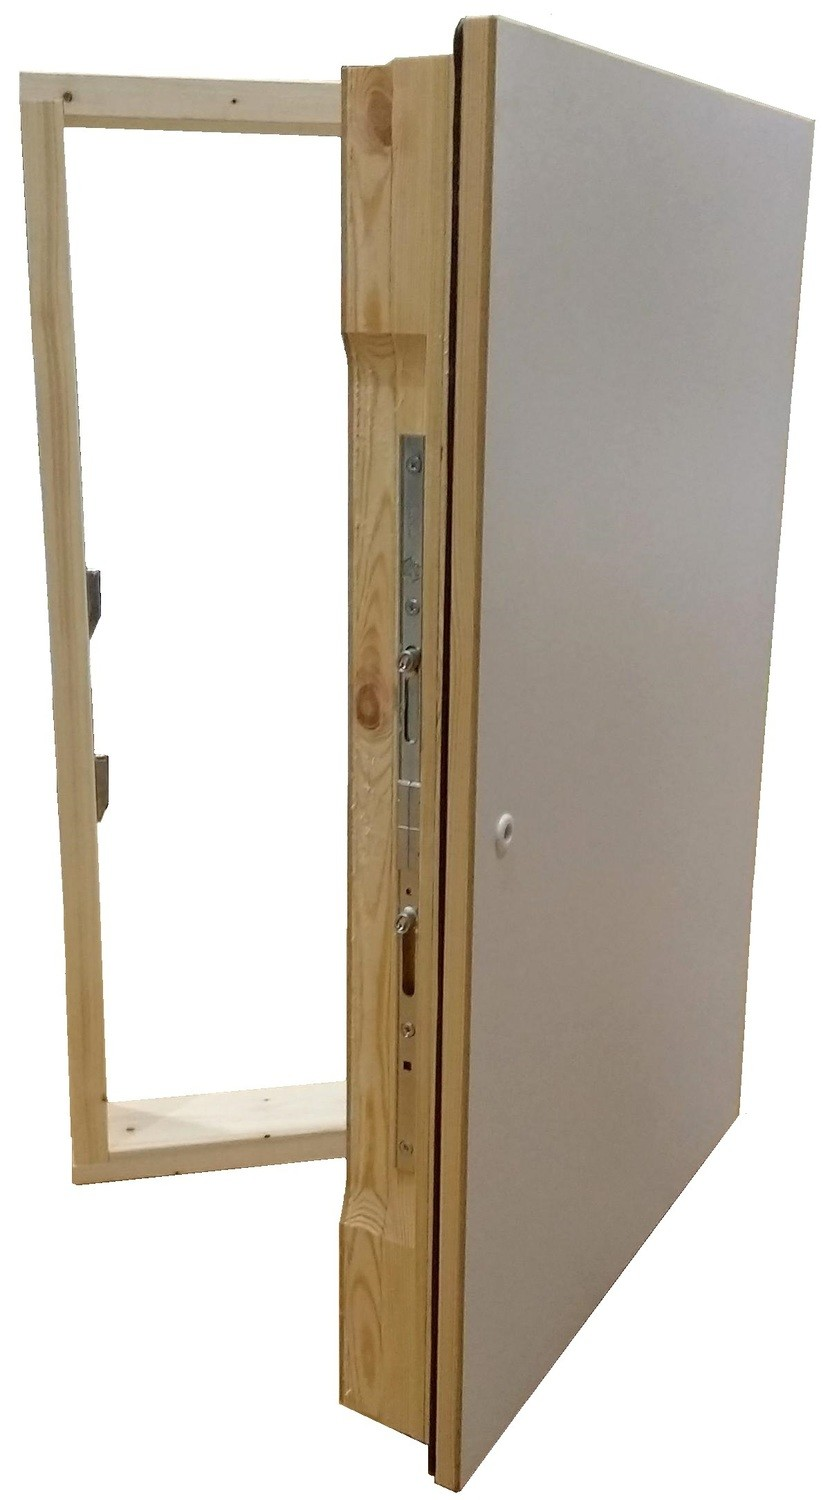 Air Tight Hatch for attic & crawl space